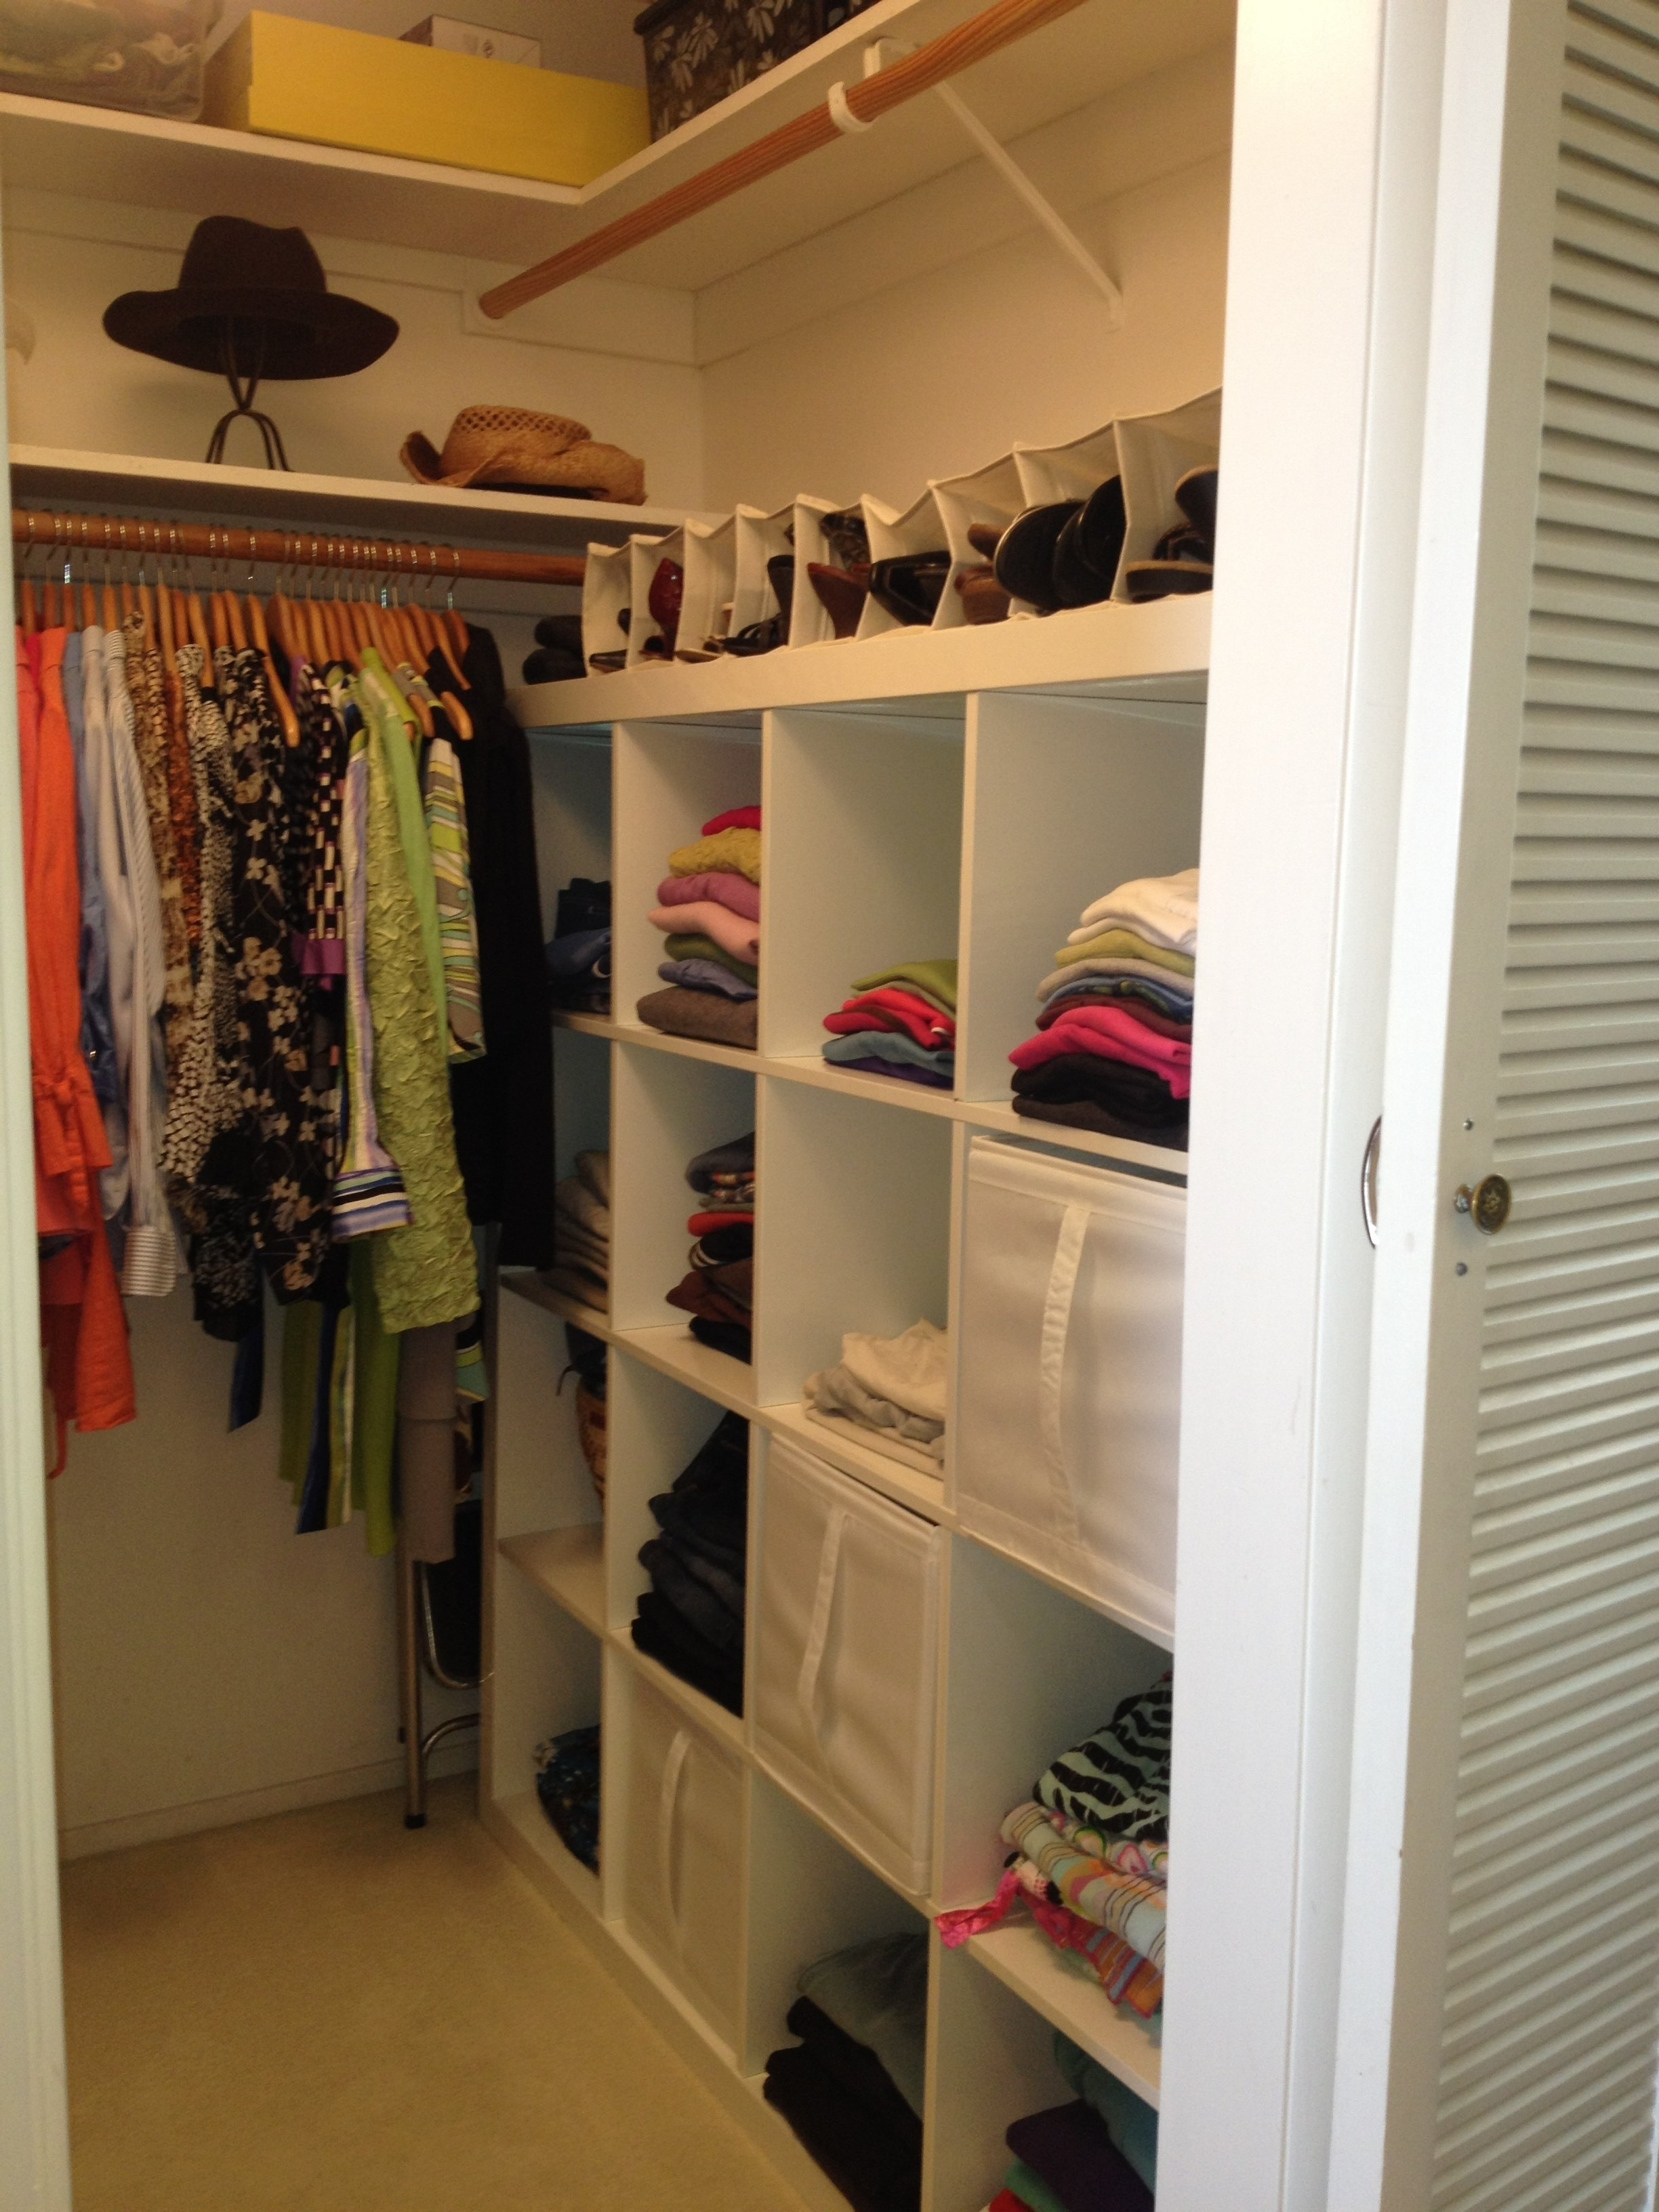 10 Awesome Ideas For Walk In Closets cool small walk in closets ideas best and awesome ideas 3550 2020